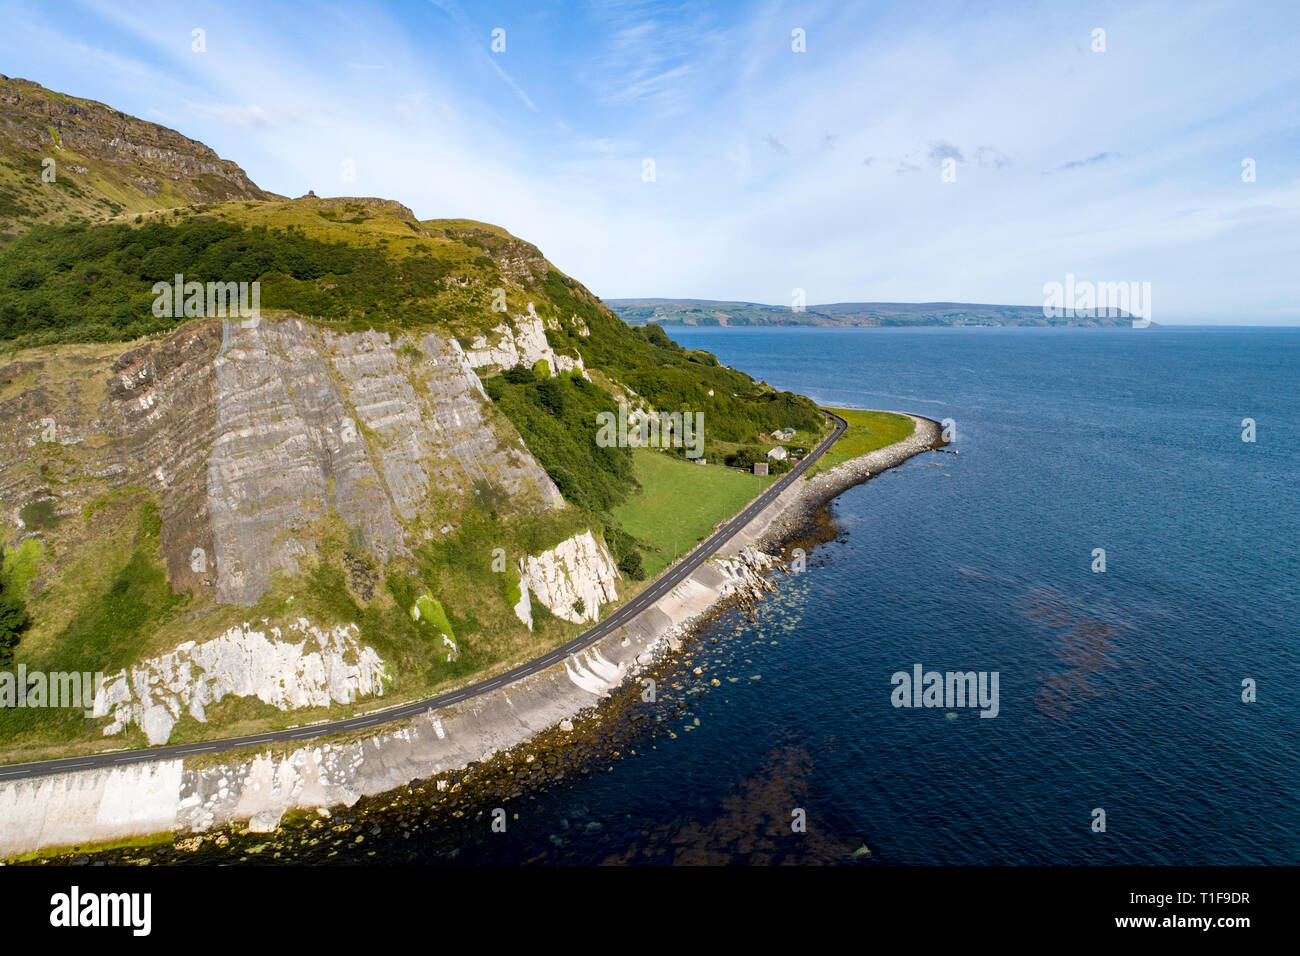 Northern Ireland, UK. Atlantic coast. Cliffs and A2 Antrim Coast Road, a.k.a. Giants Causeway Coastal Route. One of the most scenic coastal roads in E - Stock Image